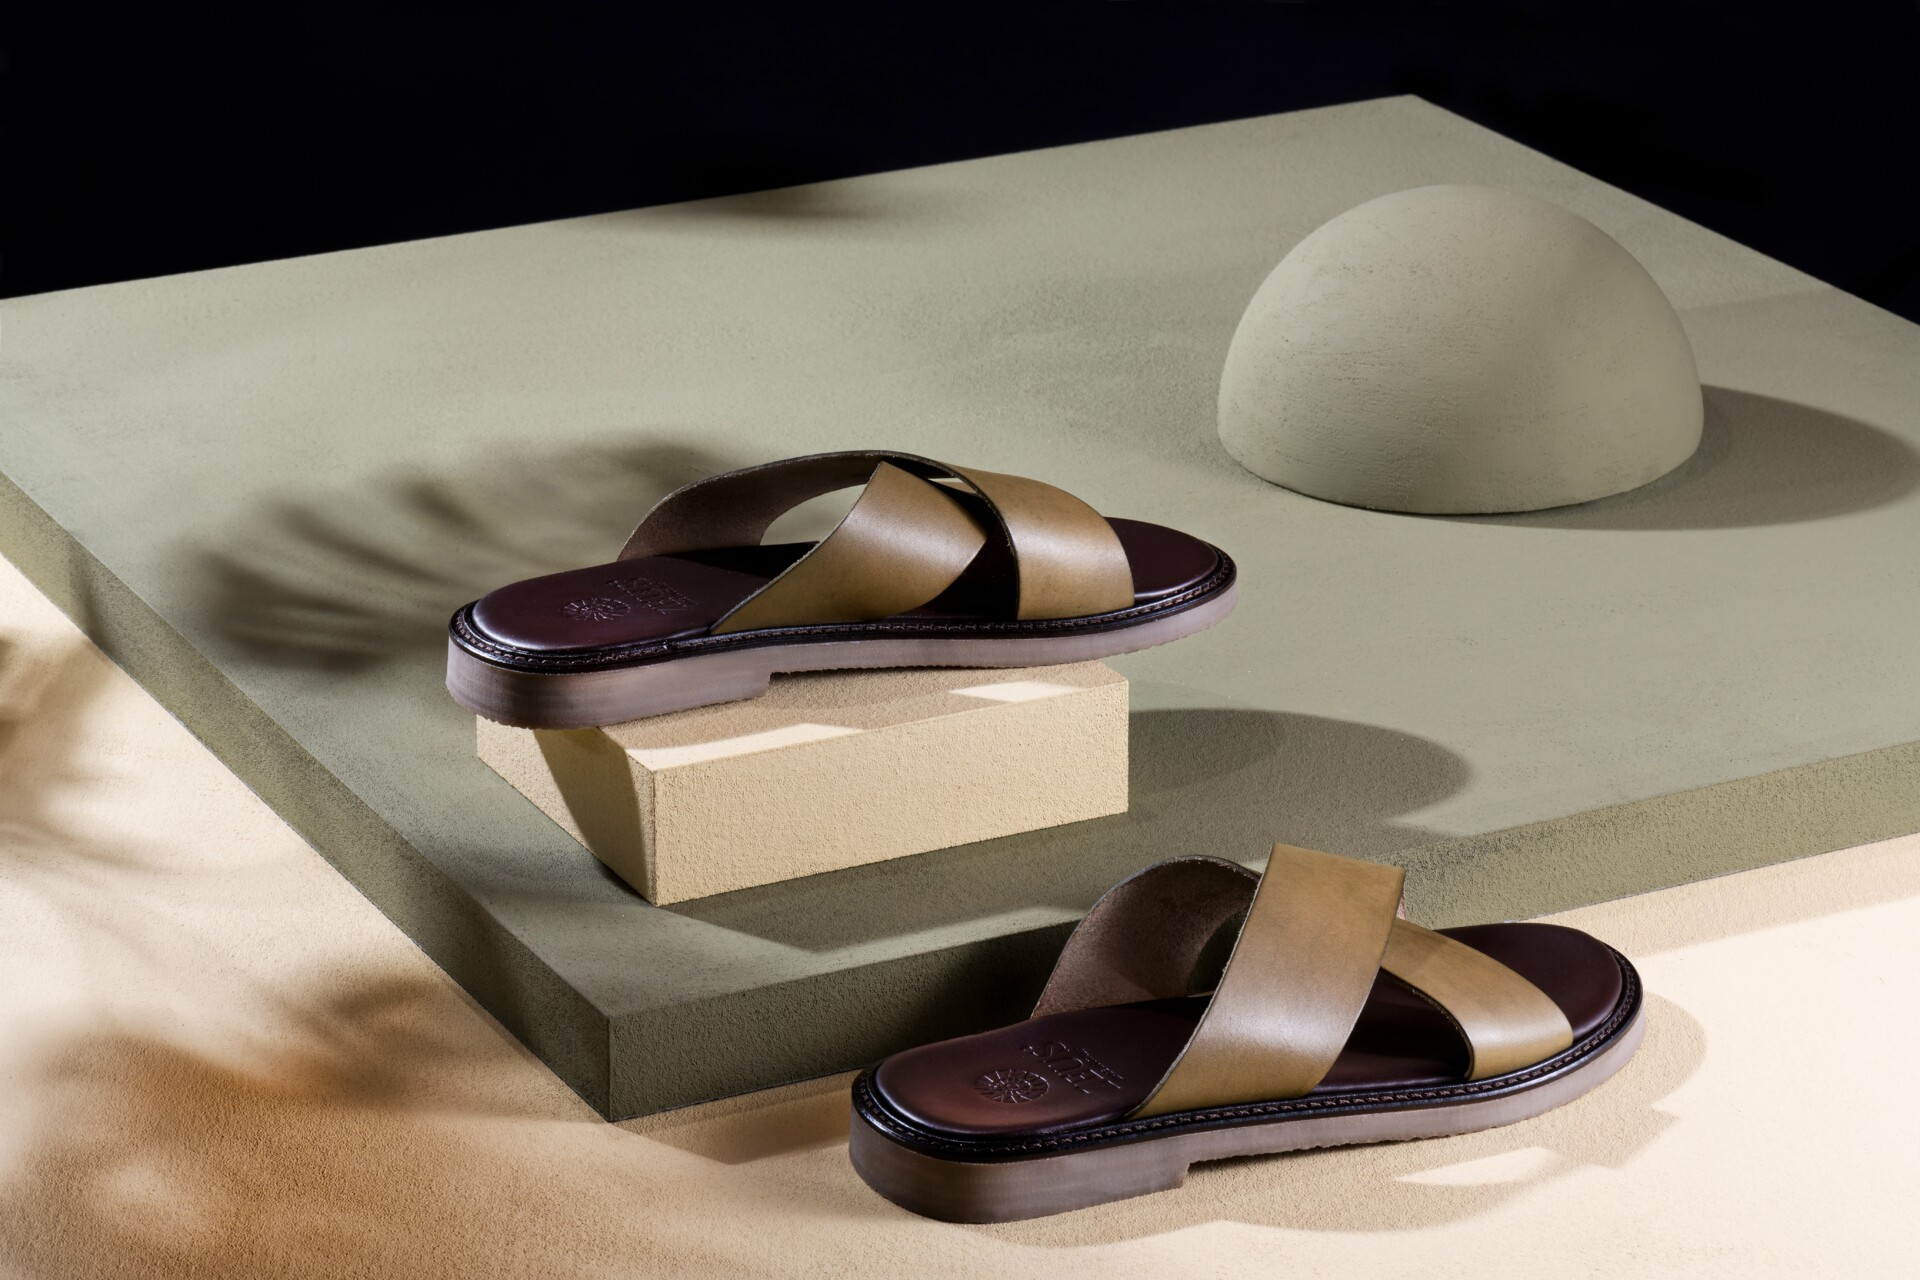 zeus-sandals-made-in-italy-fashion-shop-22